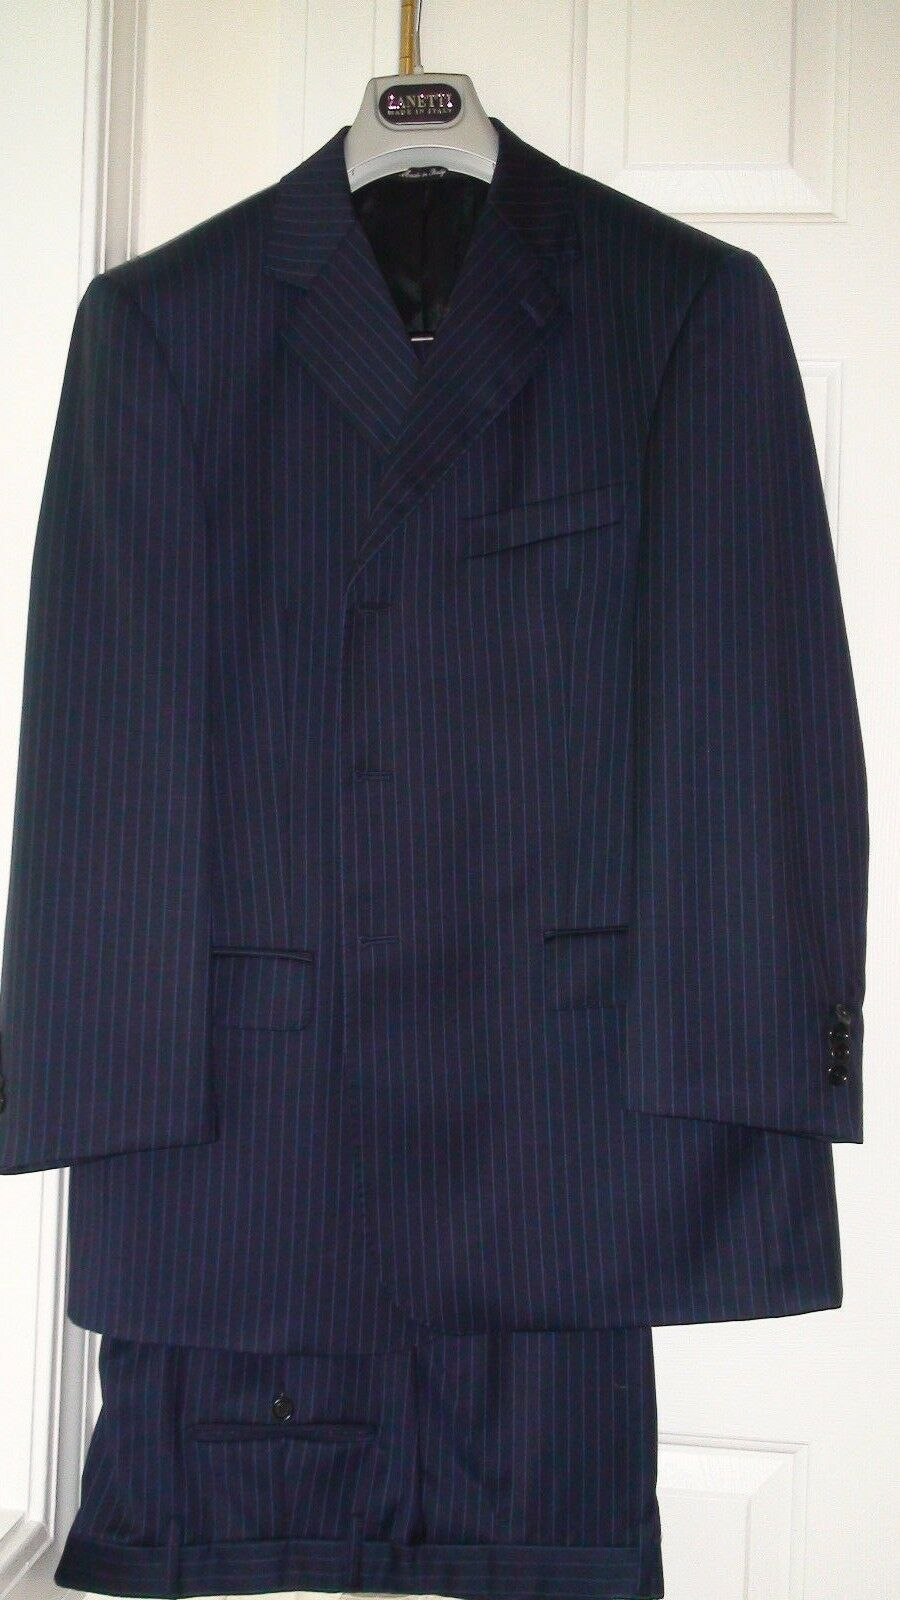 NEW ZANETTI NAVY SUPER 140's WOOL MEN'S SUIT sz. US 44  IT 54 MADE IN ITALY